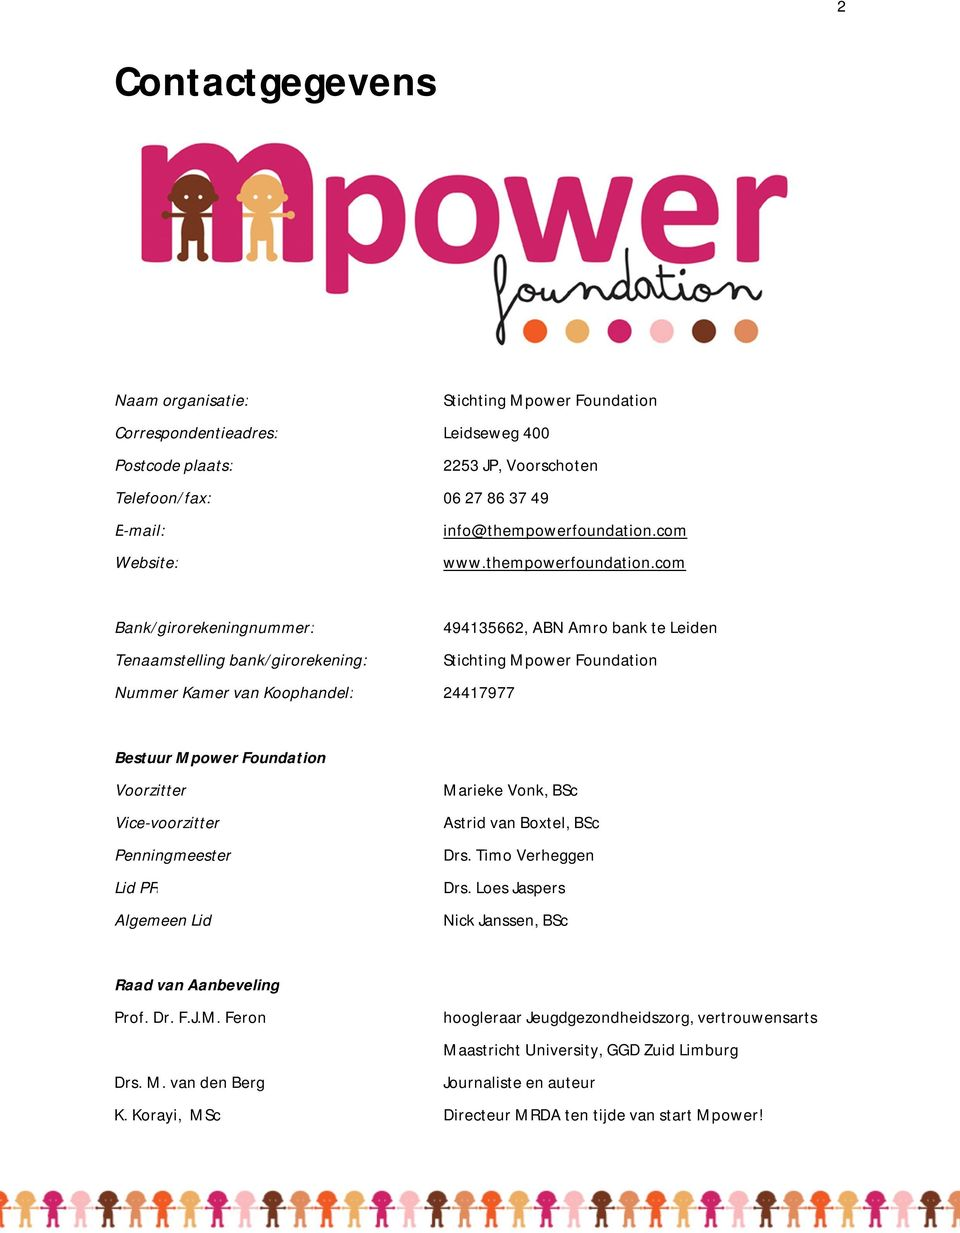 com Bank/girorekeningnummer: 494135662, ABN Amro bank te Leiden Tenaamstelling bank/girorekening: Stichting Mpower Foundation Nummer Kamer van Koophandel: 24417977 Bestuur Mpower Foundation